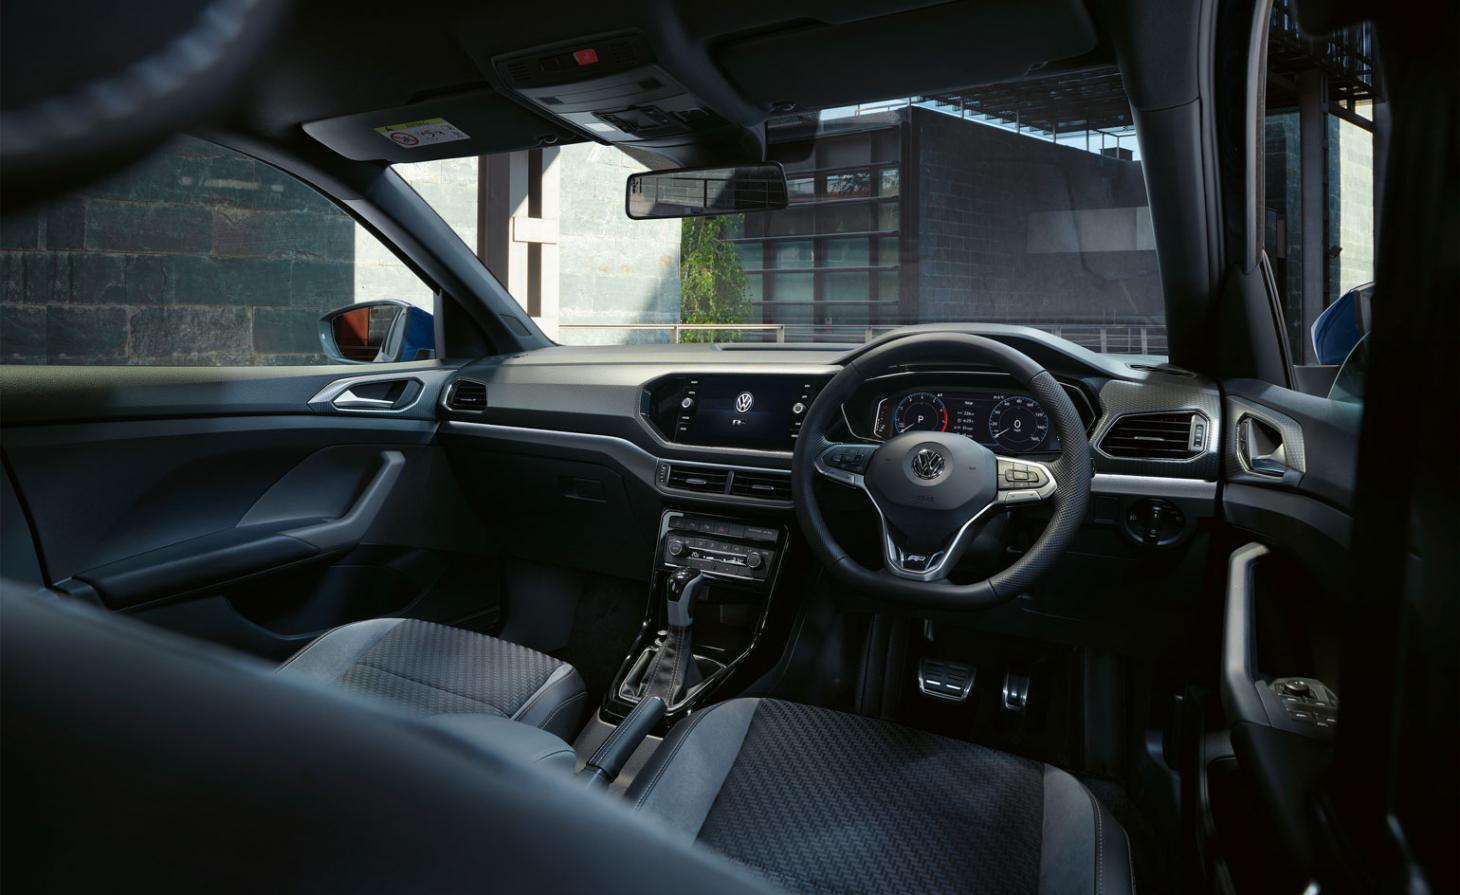 Youth meets experience in Volkswagen's new T-Cross